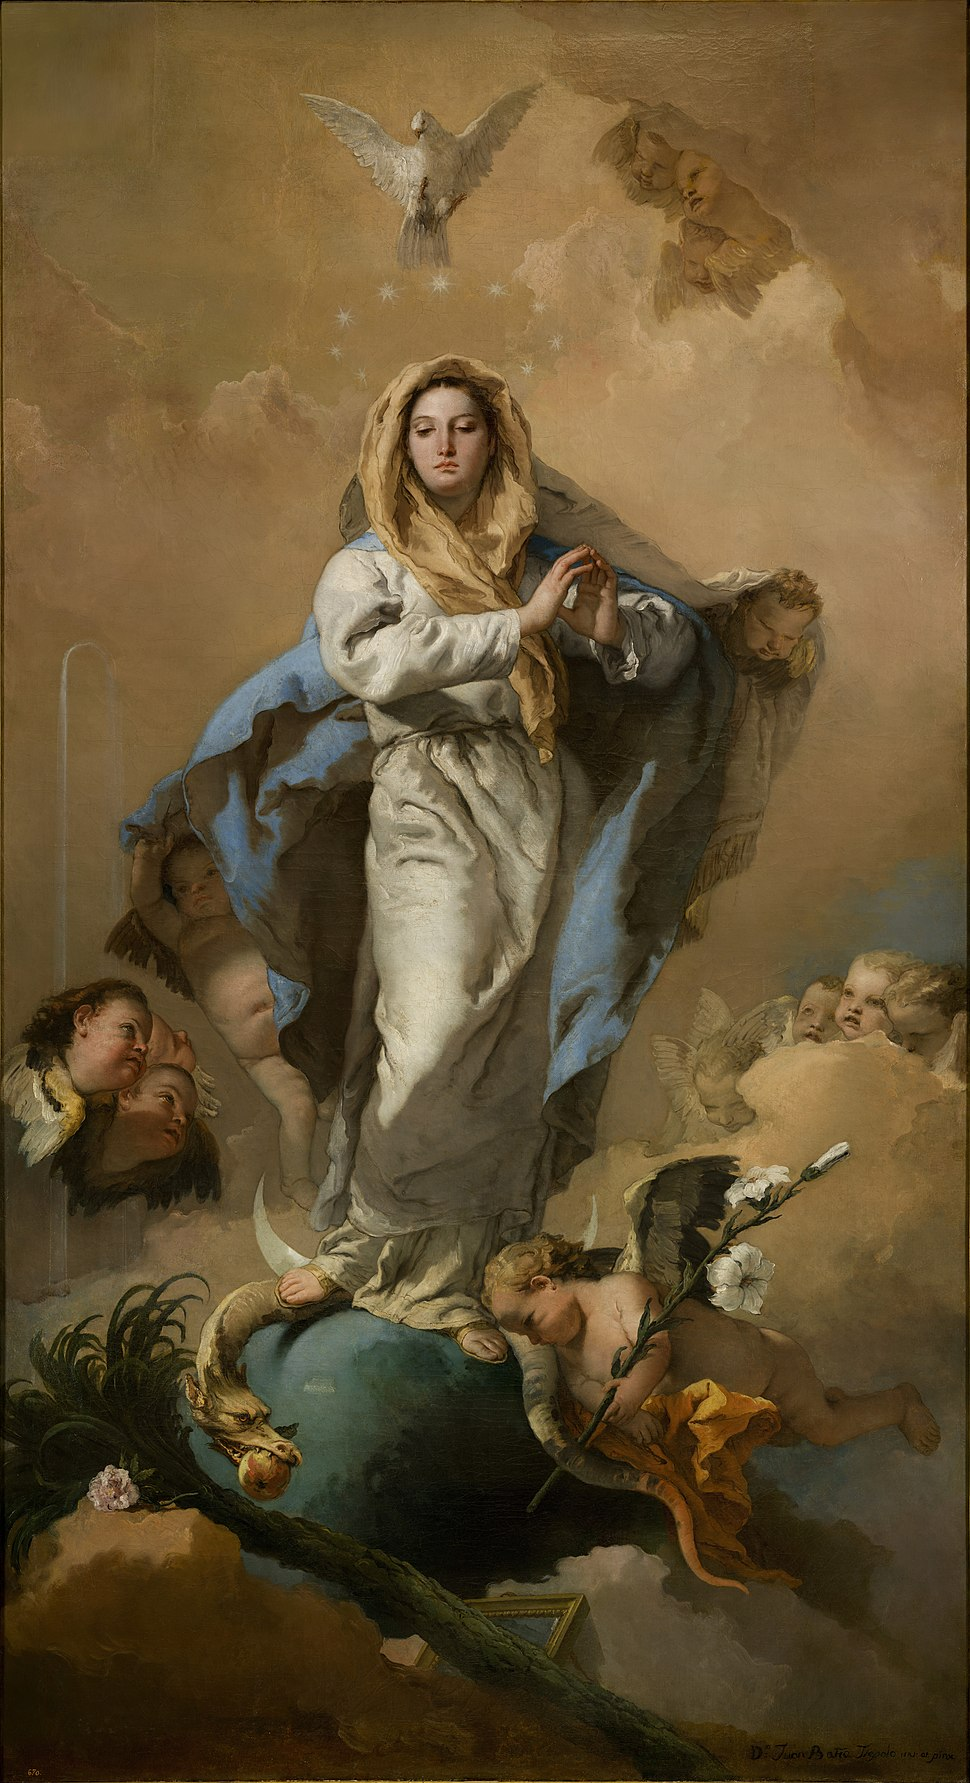 The Immaculate Conception, by Giovanni Battista Tiepolo, from Prado in Google Earth